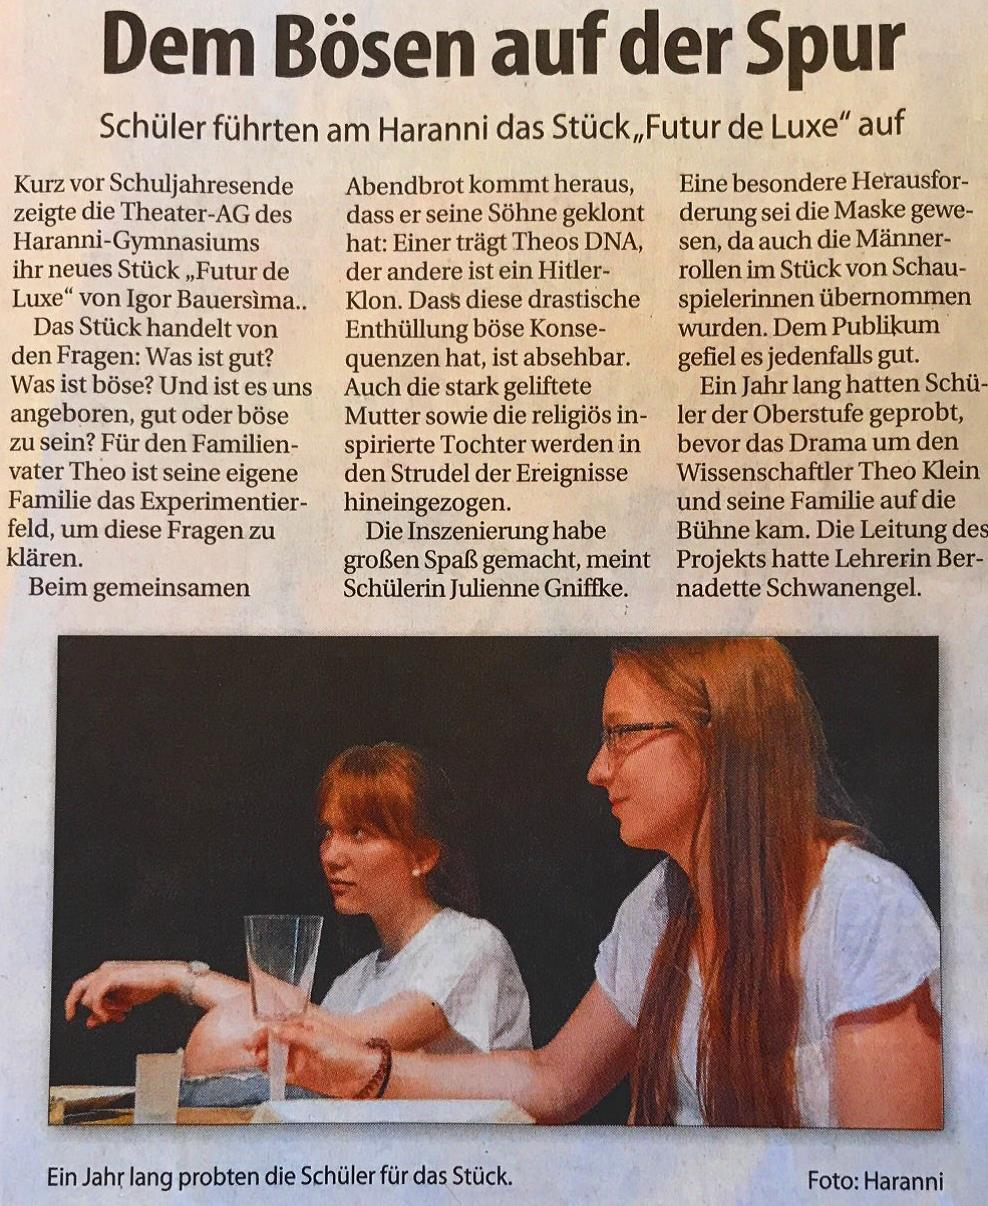 themater 20181 zeitung 25.07.18